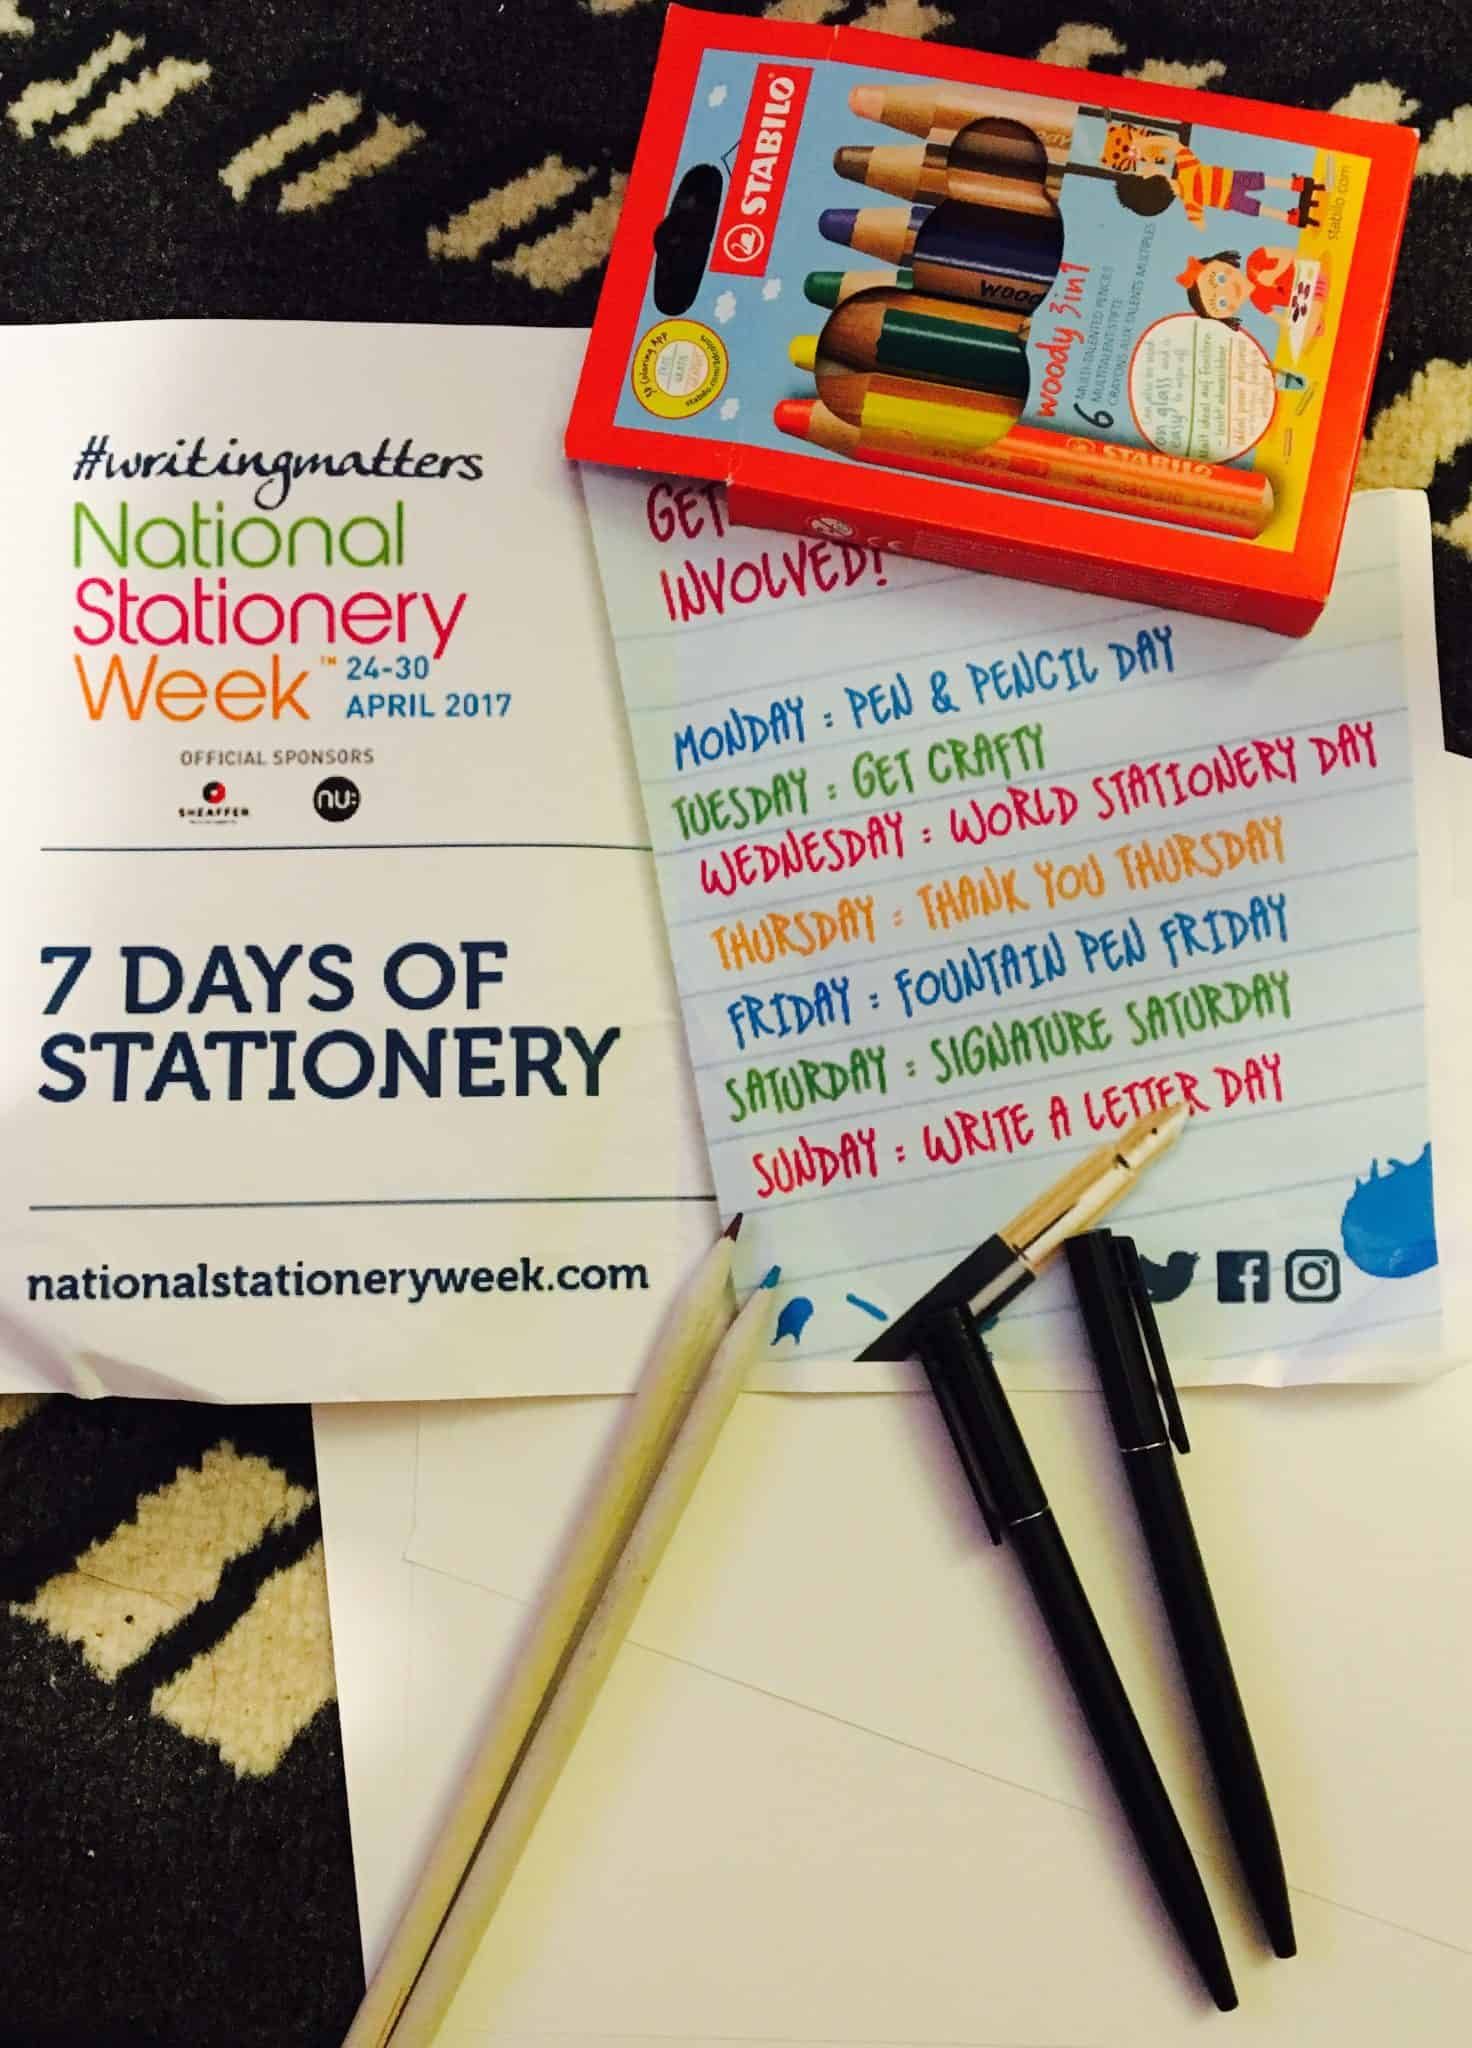 National Stationery Week 24-30th April 2017